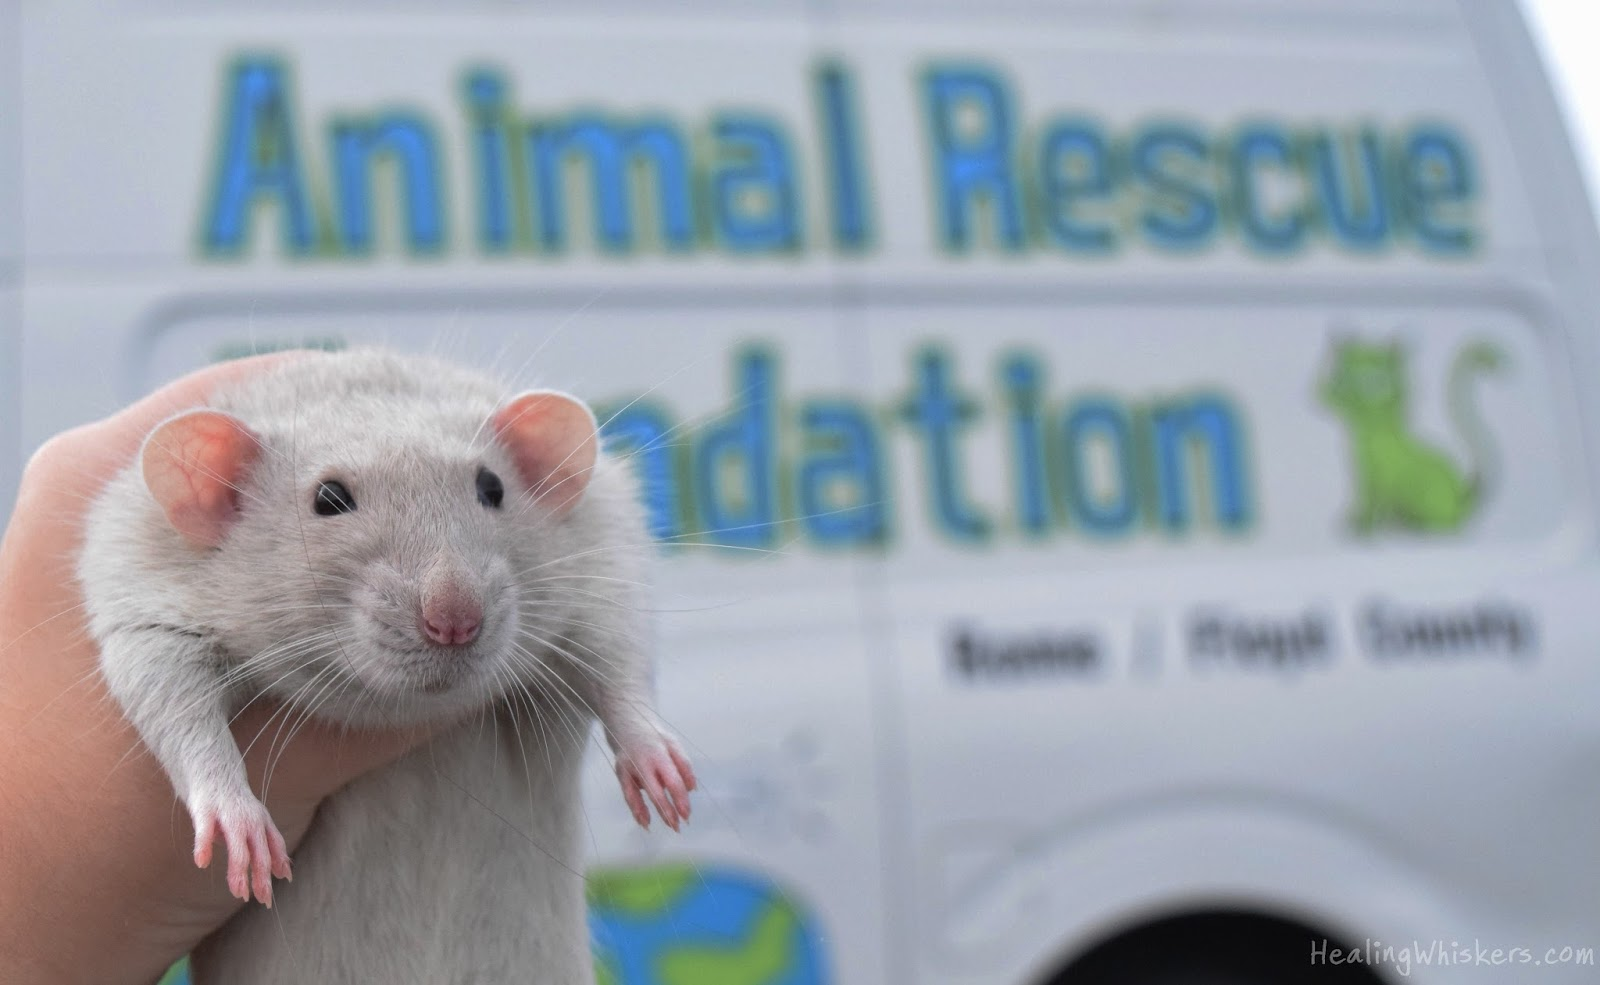 Healing Whiskers: Rats, Rat Rods, and Romaine Lettuce